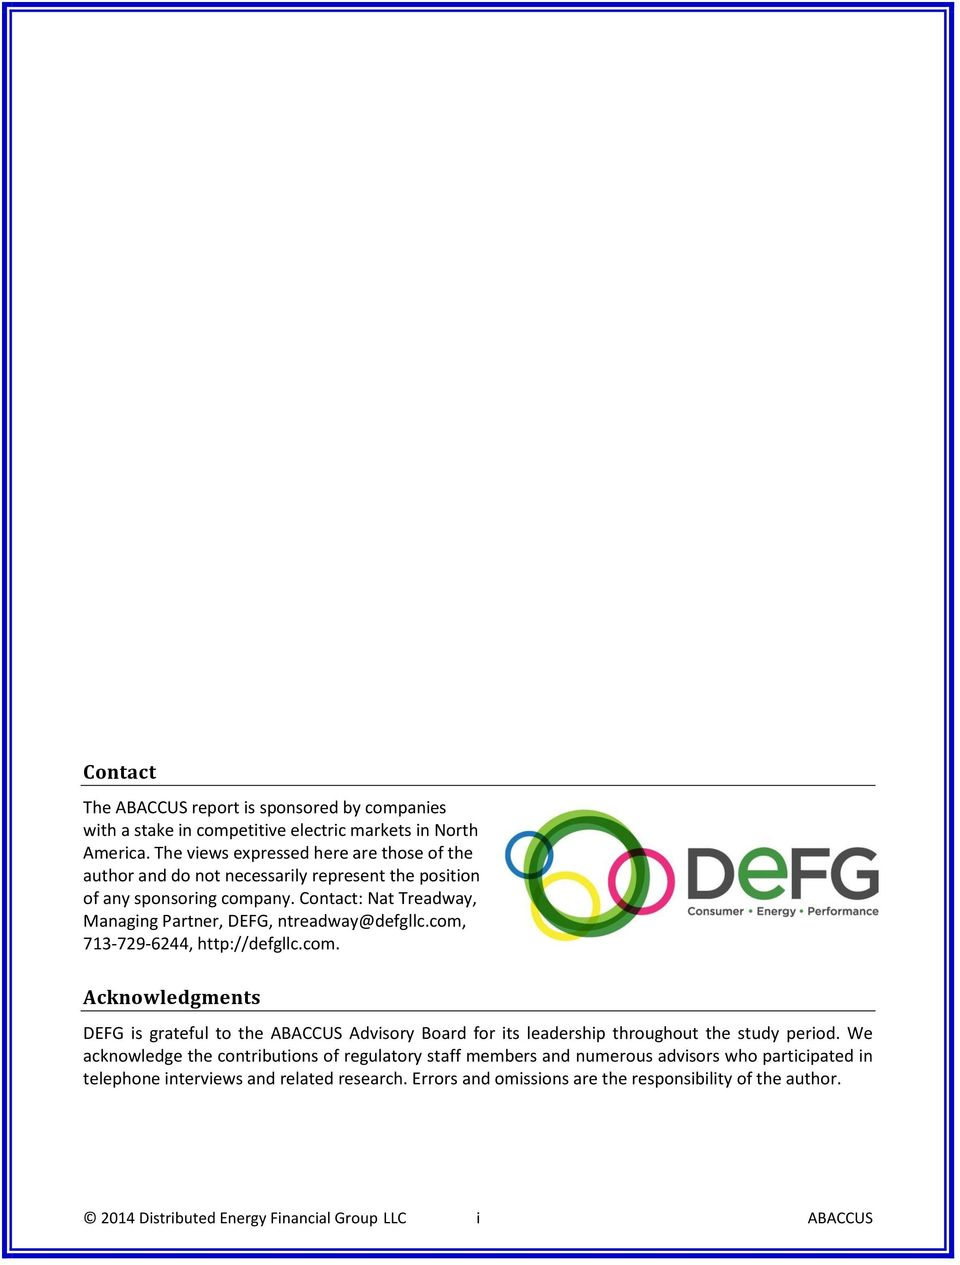 Contact: Nat Treadway, Managing Partner, DEFG, ntreadway@defgllc.com,